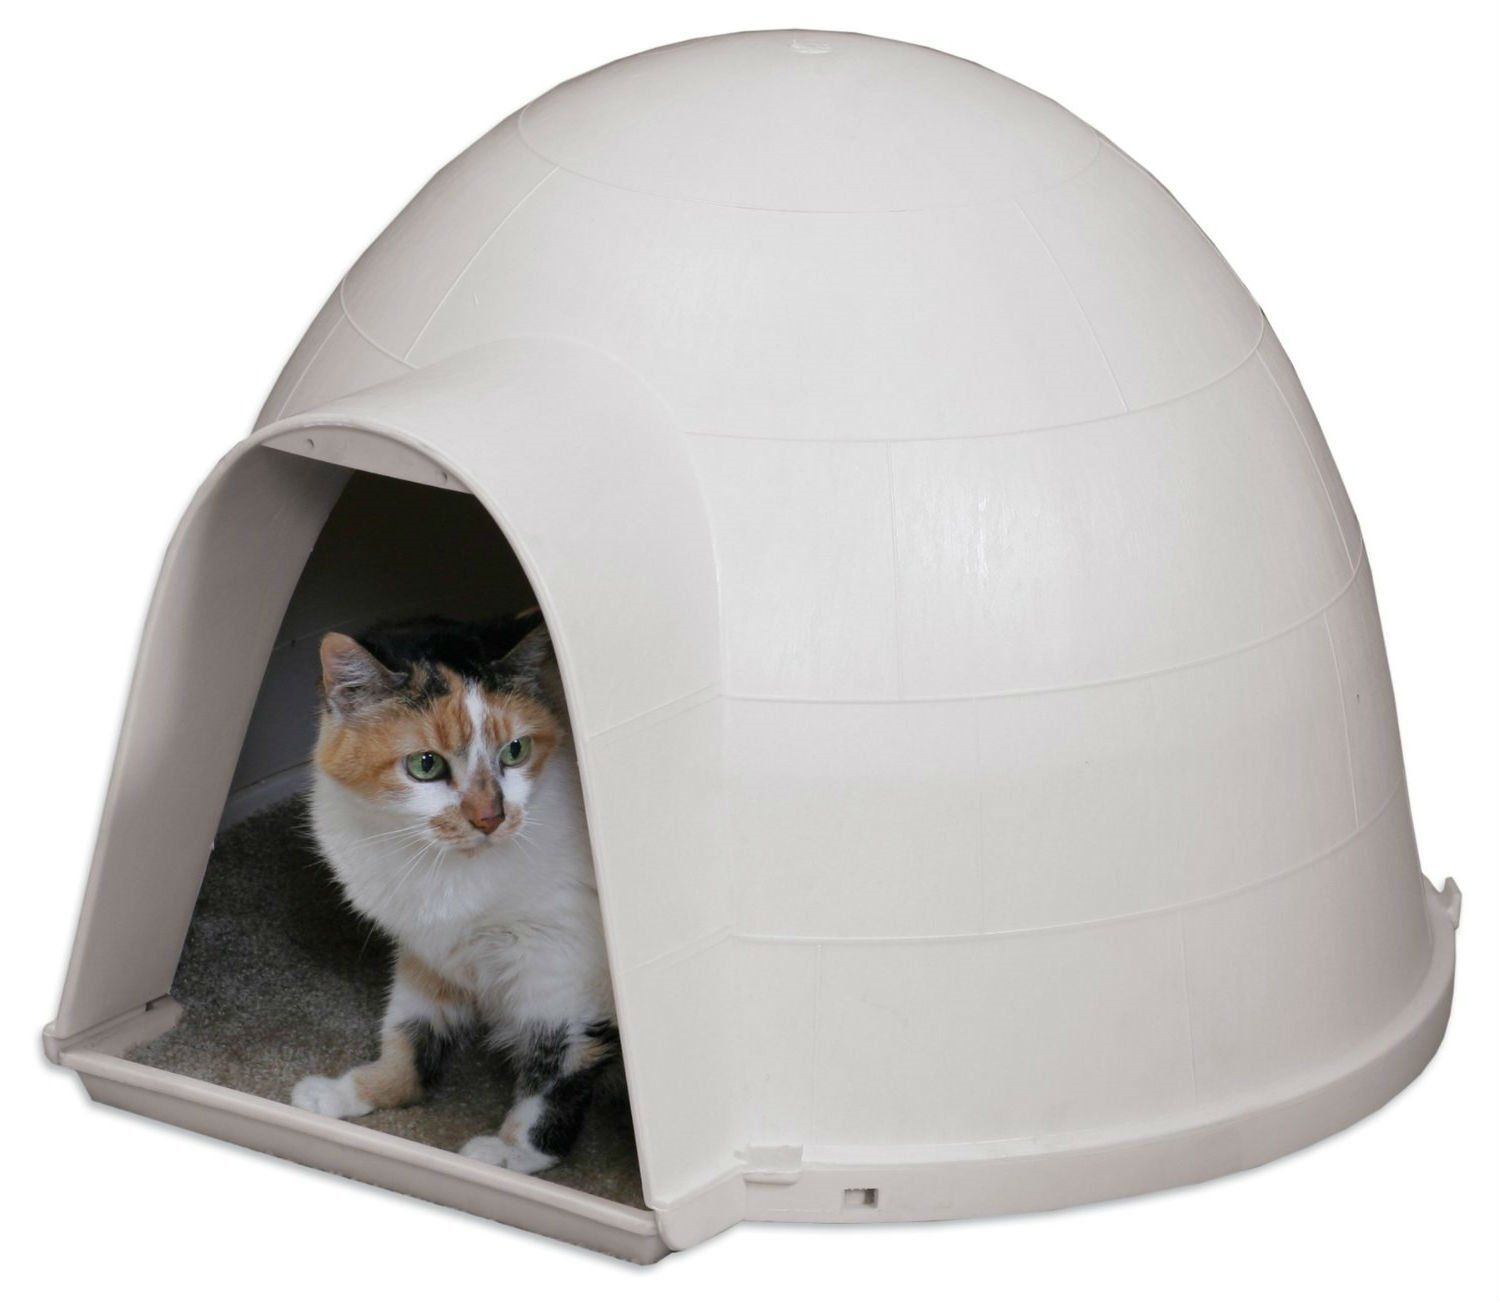 Outdoor Kitty Cat Igloo With Carpeted Floor Outdoor Cat House